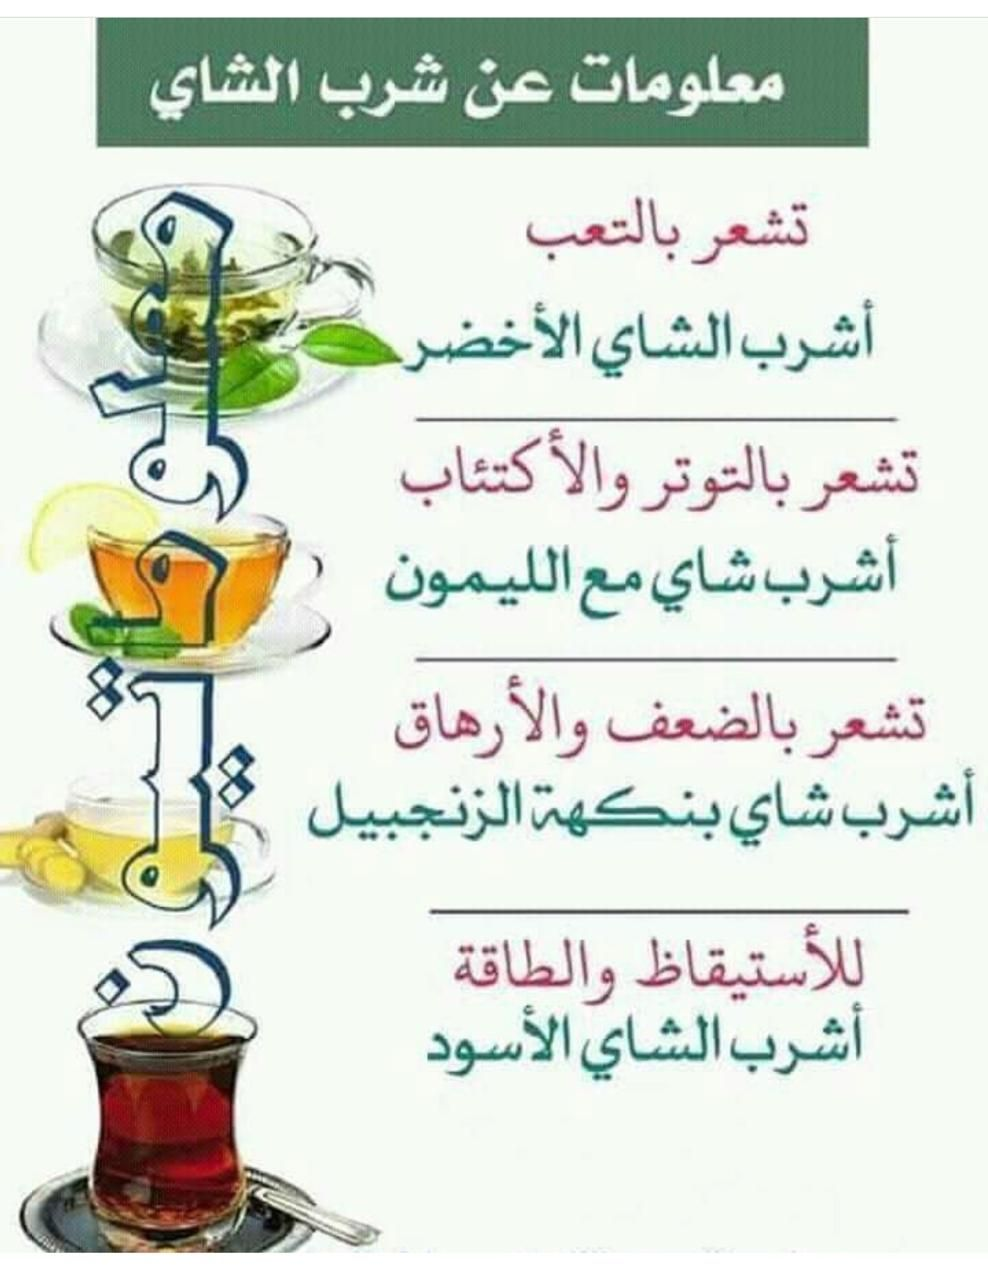 Pin By براءة حروف On اعشاب Health And Fitness Magazine Health And Nutrition Health Diet